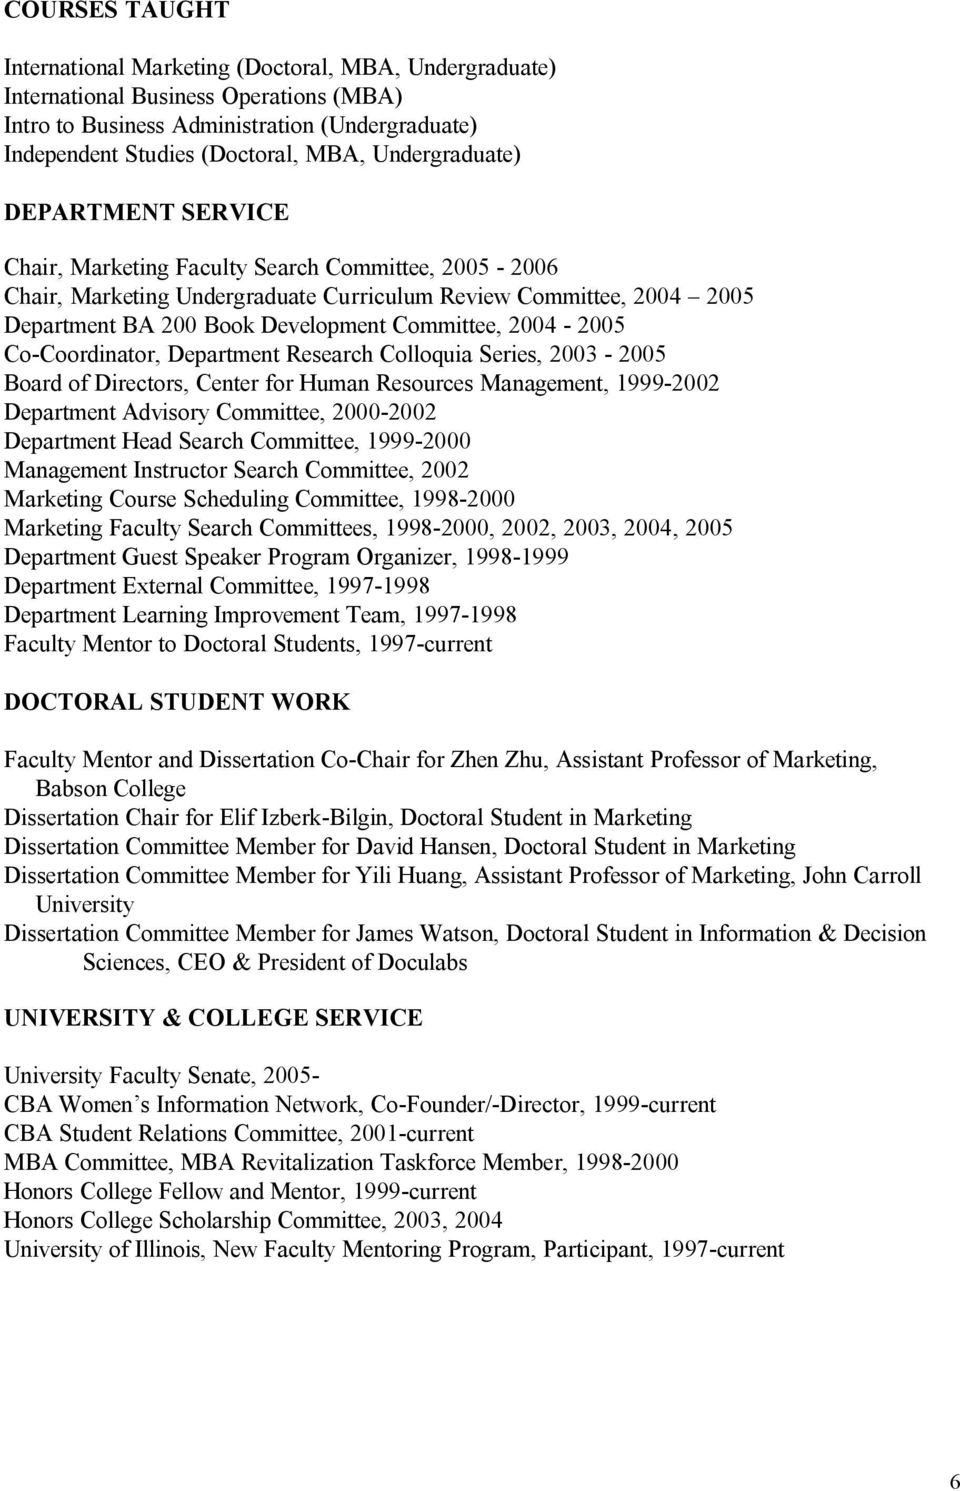 Committee, 2004-2005 Co-Coordinator, Department Research Colloquia Series, 2003-2005 Board of Directors, Center for Human Resources Management, 1999-2002 Department Advisory Committee, 2000-2002